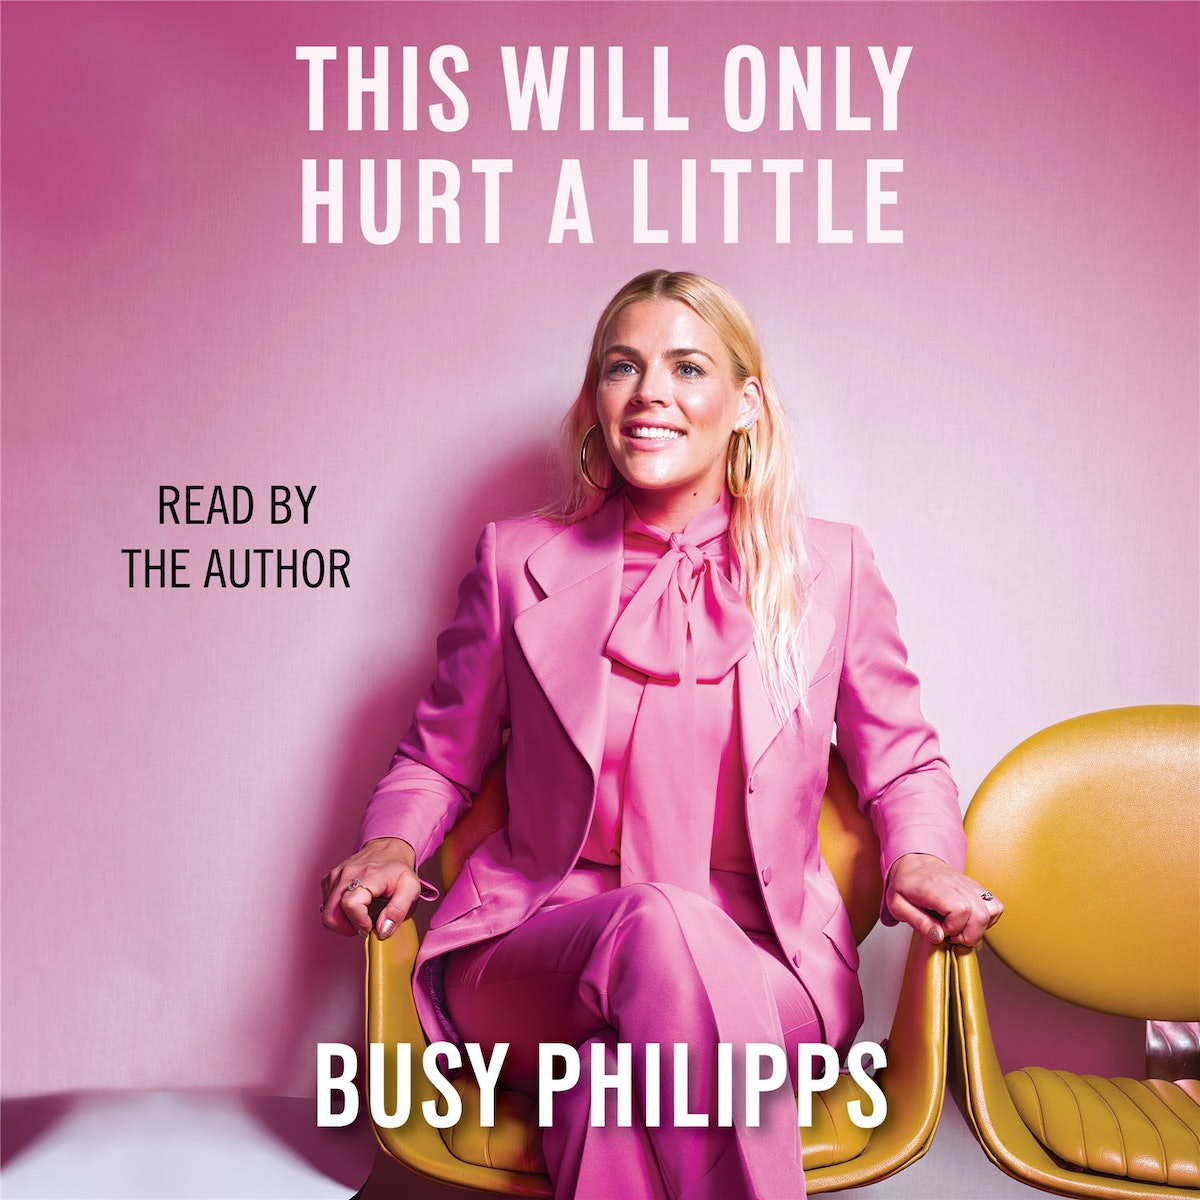 Busy Philipps Talks About Joining The Cast Of 'Dawson's Creek' In This Excerpt From 'This Will Only Hurt A Little'